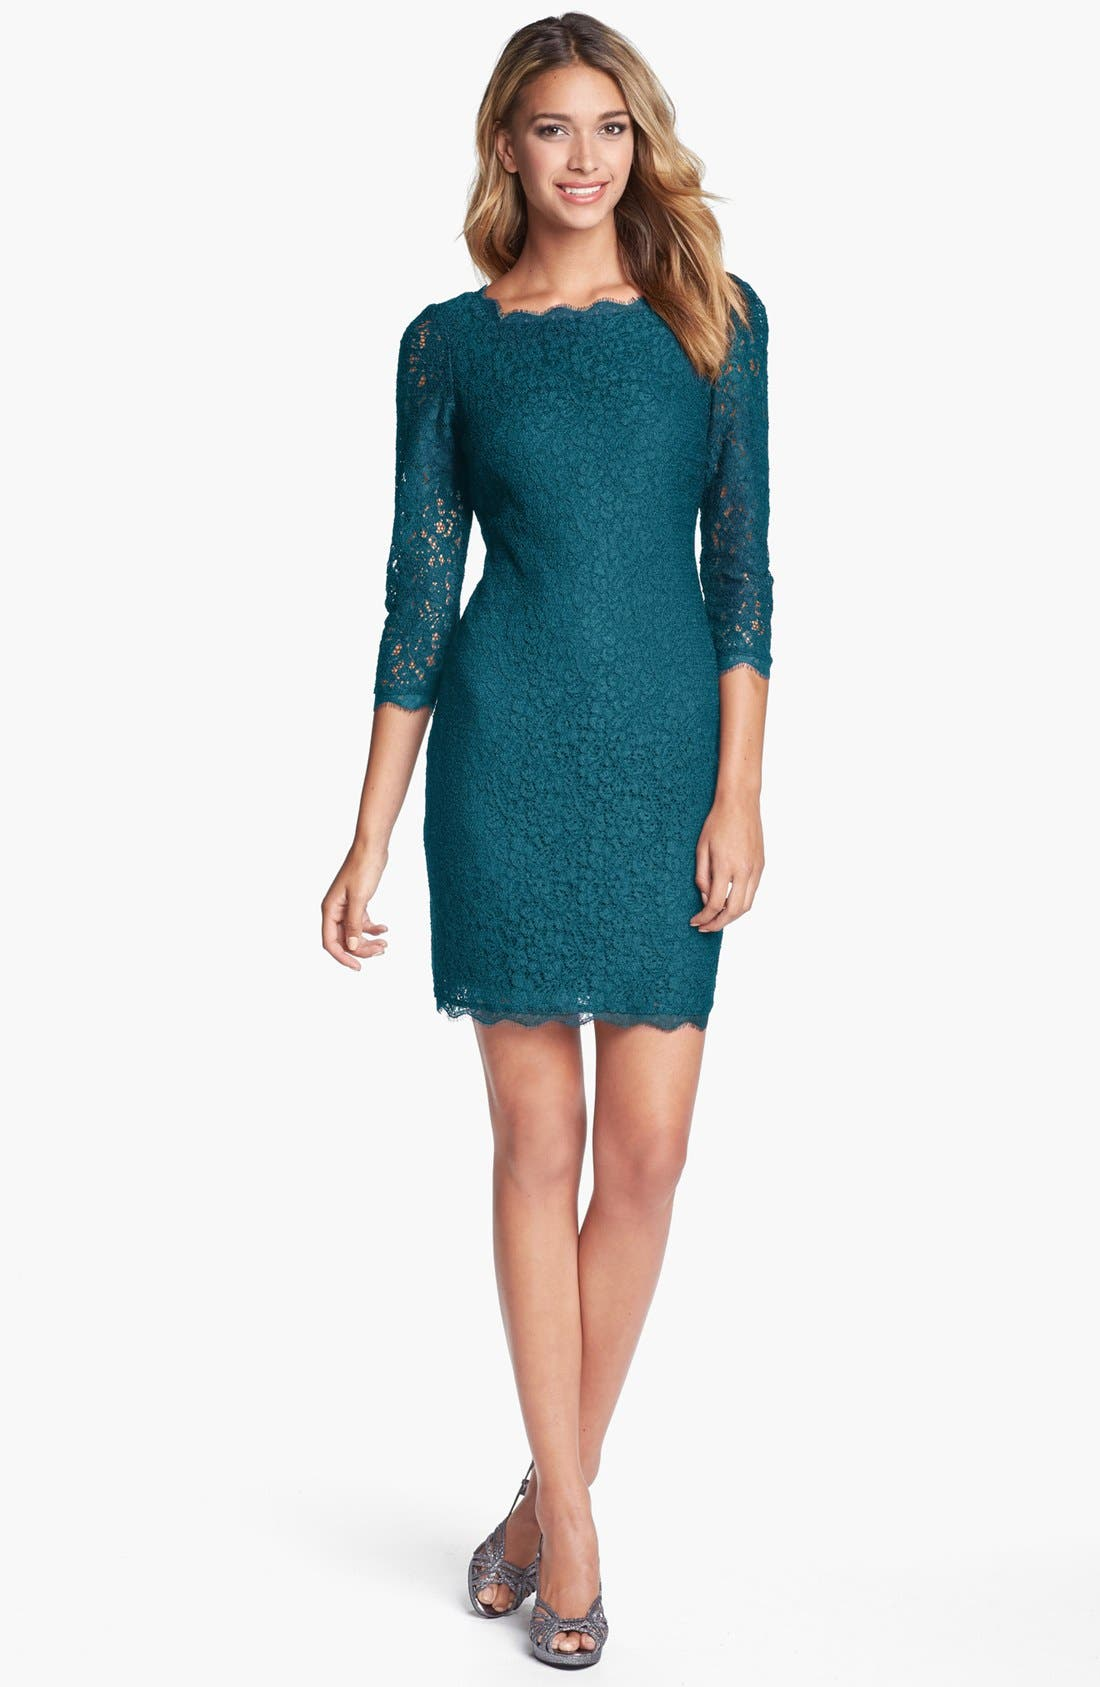 Main Image - Adrianna Papell Lace Overlay Sheath Dress (Regular & Petite)